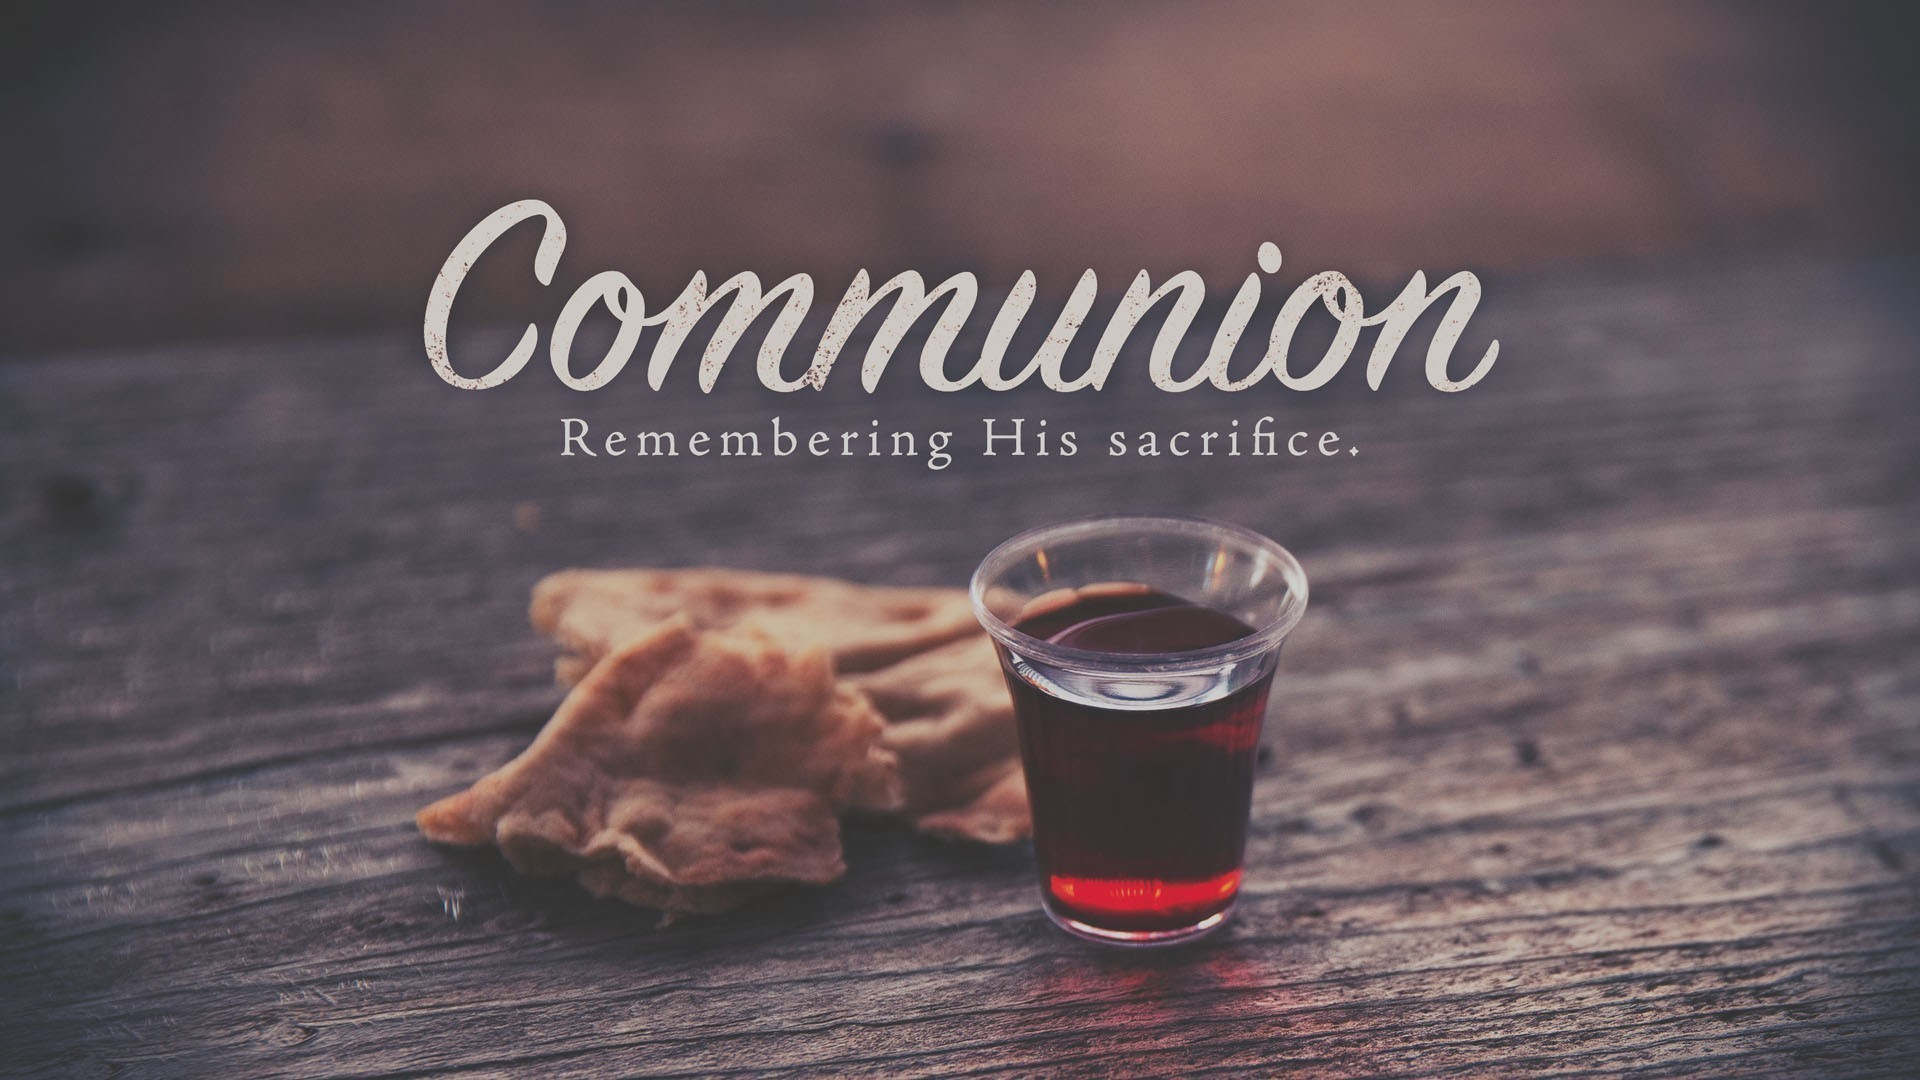 Communion (at Home)